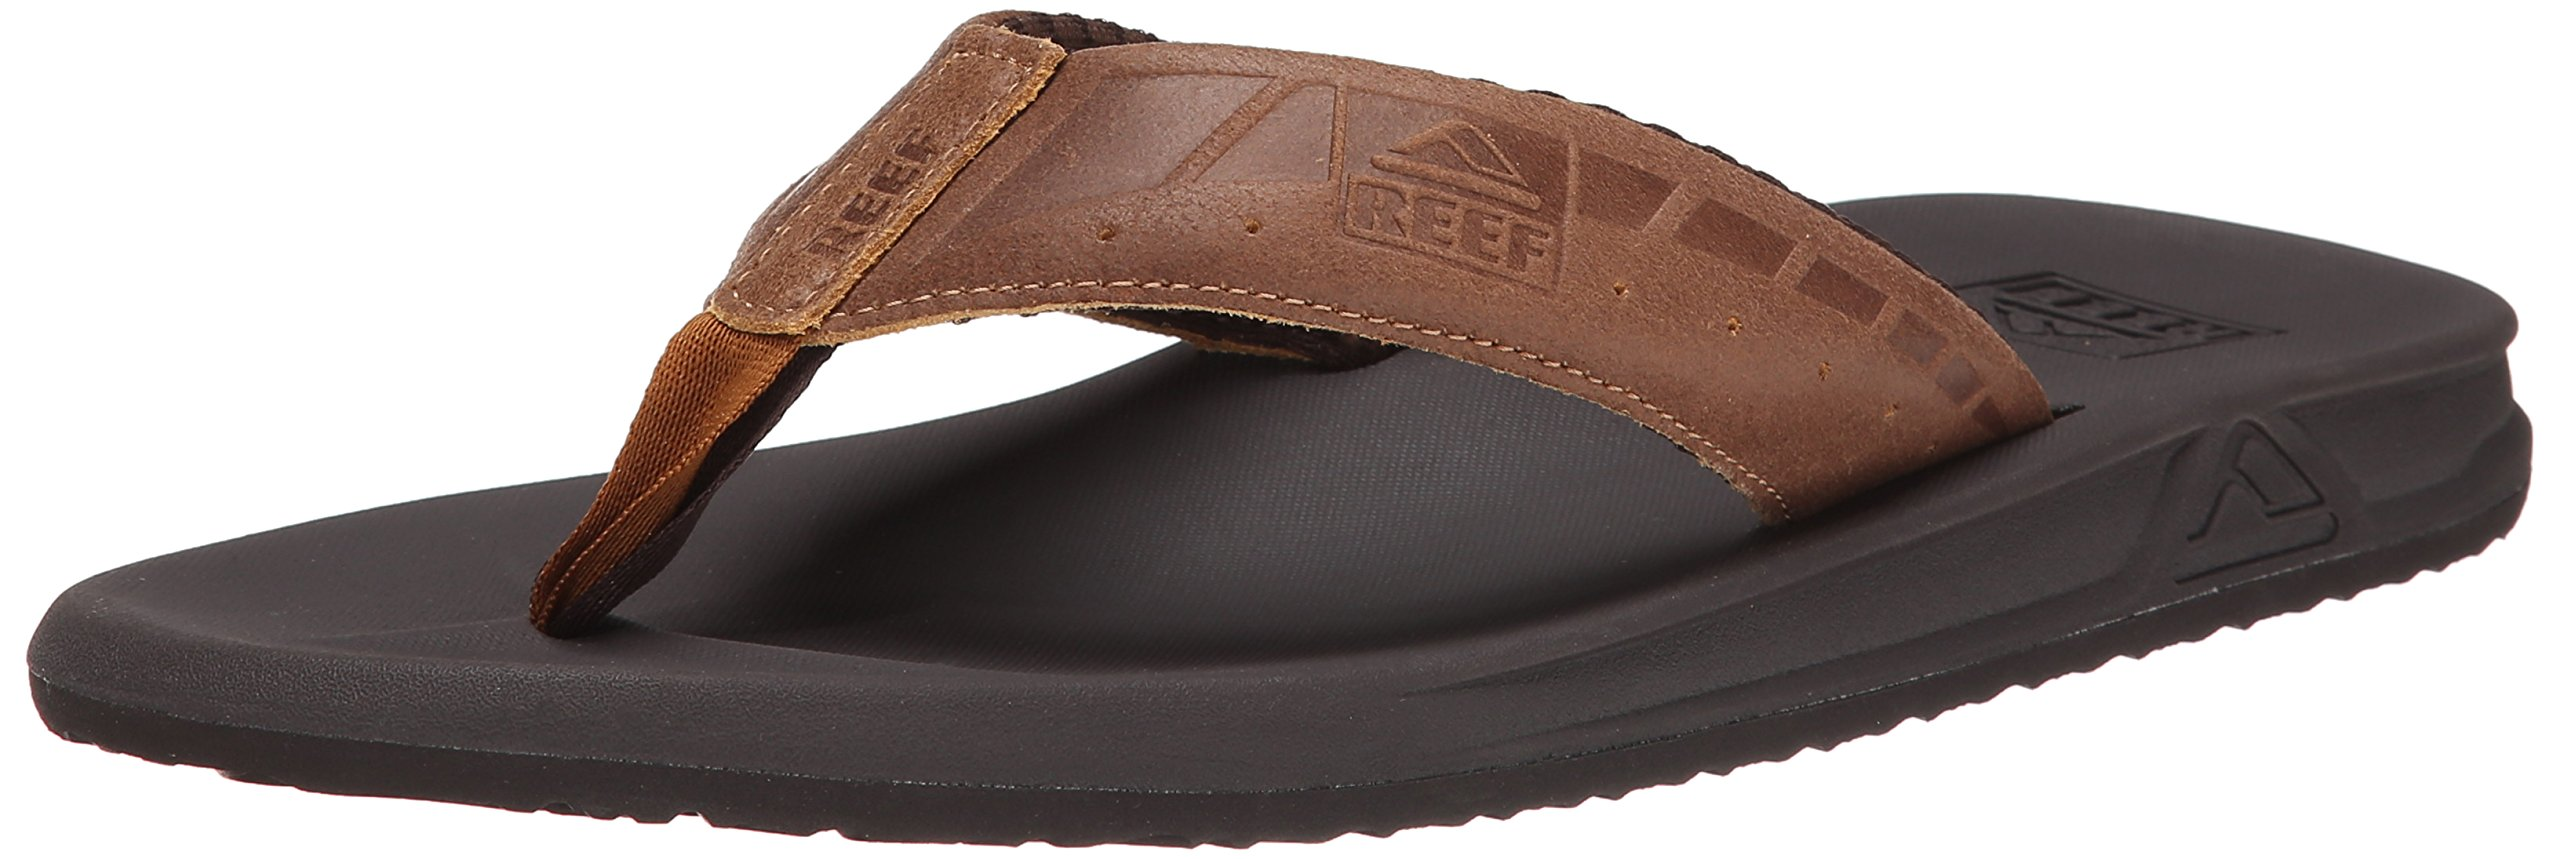 Reef Men's Phantom LE Sandal, Brown/Tan, 12 M US